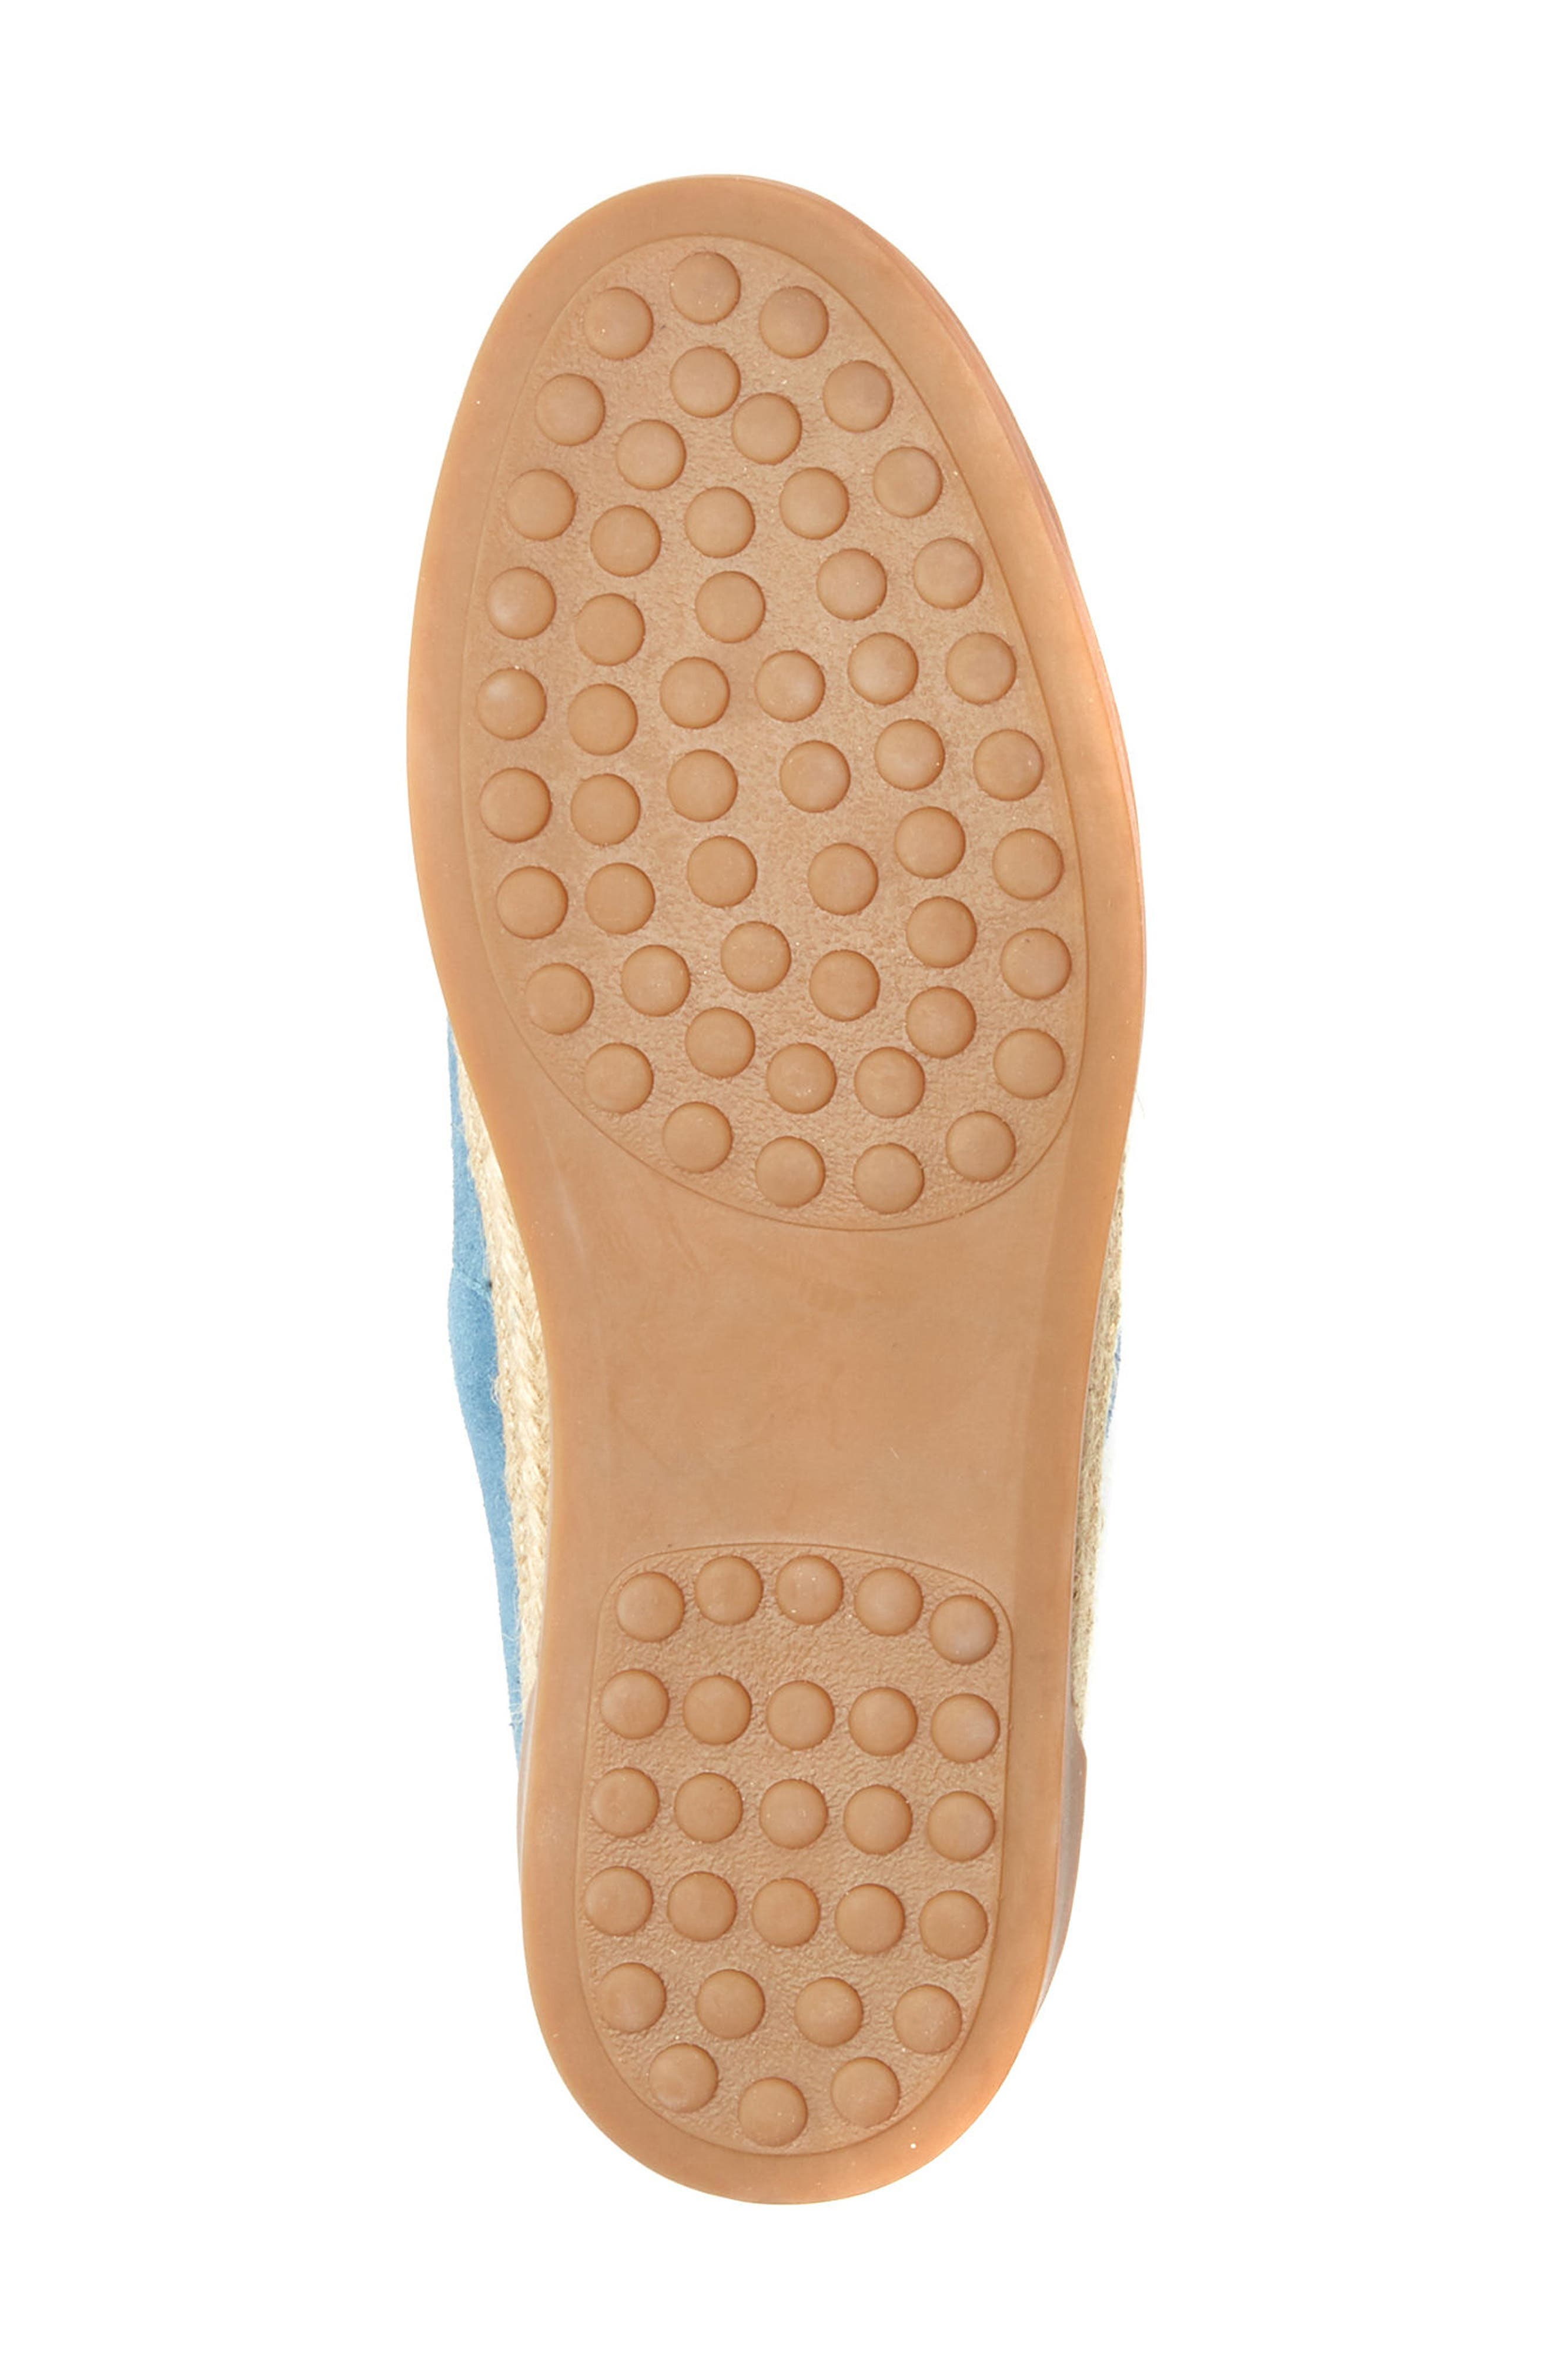 Bailey Espadrille Flat,                             Alternate thumbnail 6, color,                             Blue Suede